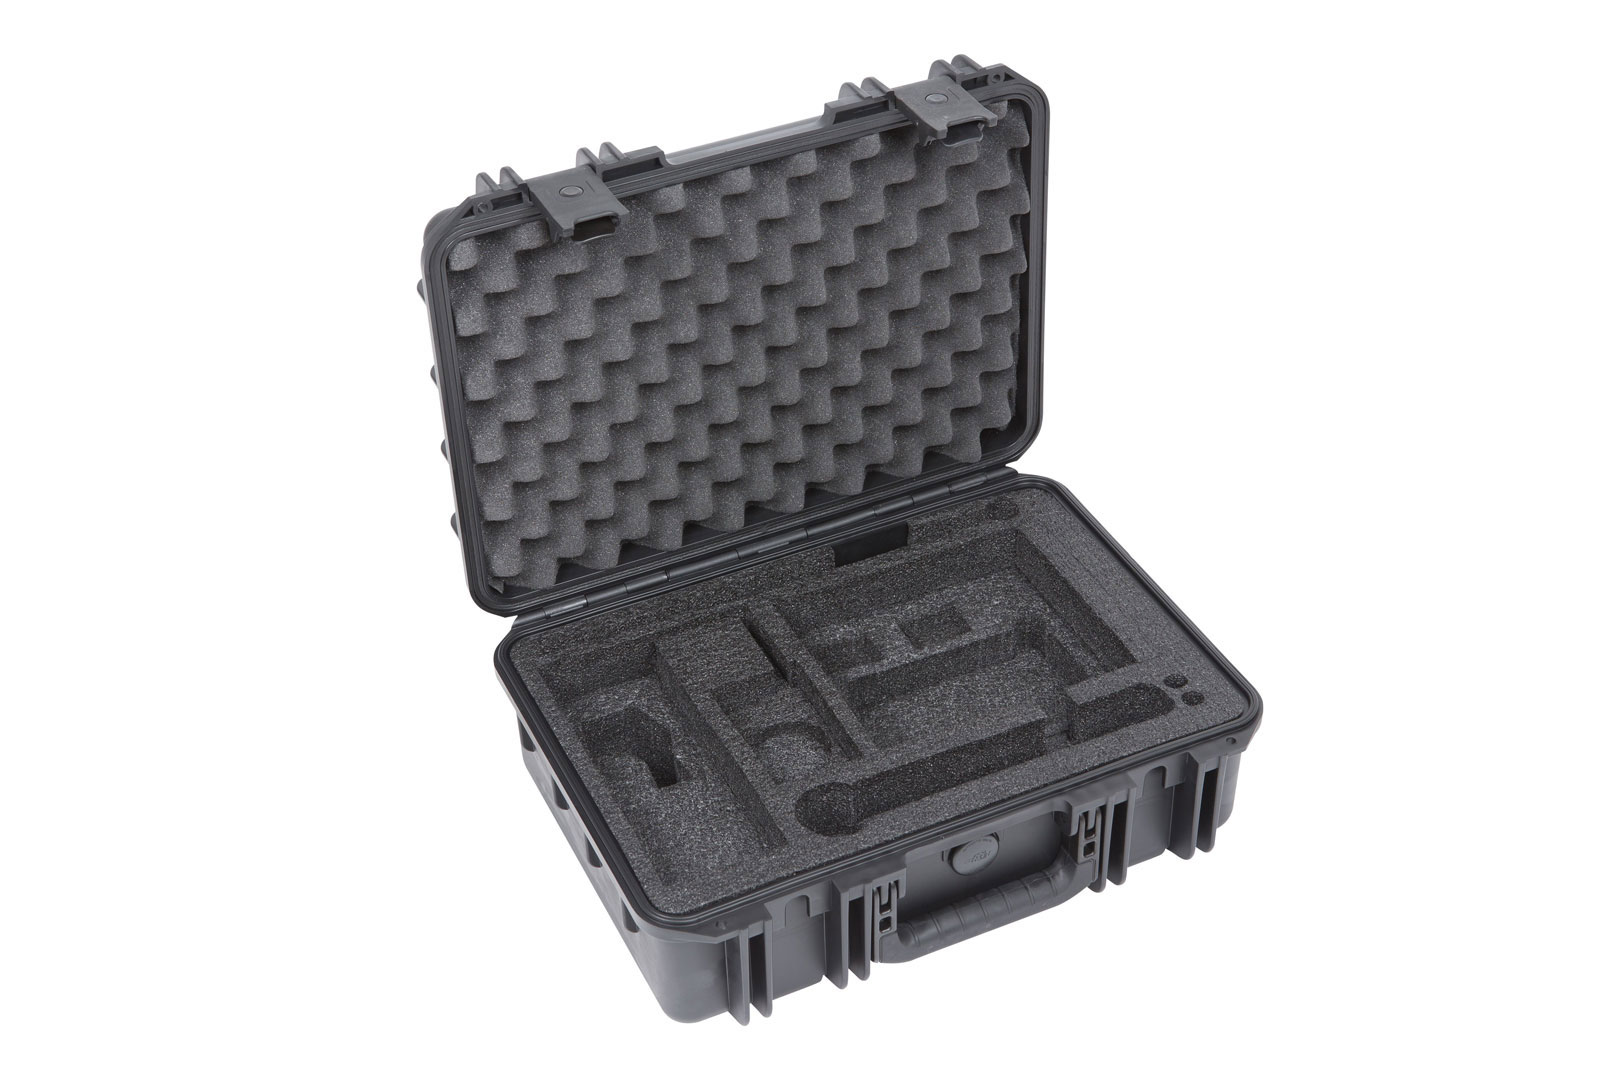 MUSIC MIC CASES ISERIES WATERPROOF CASE WITH SHURE SLX/ULX CUSTOM INTERIOR BLACK